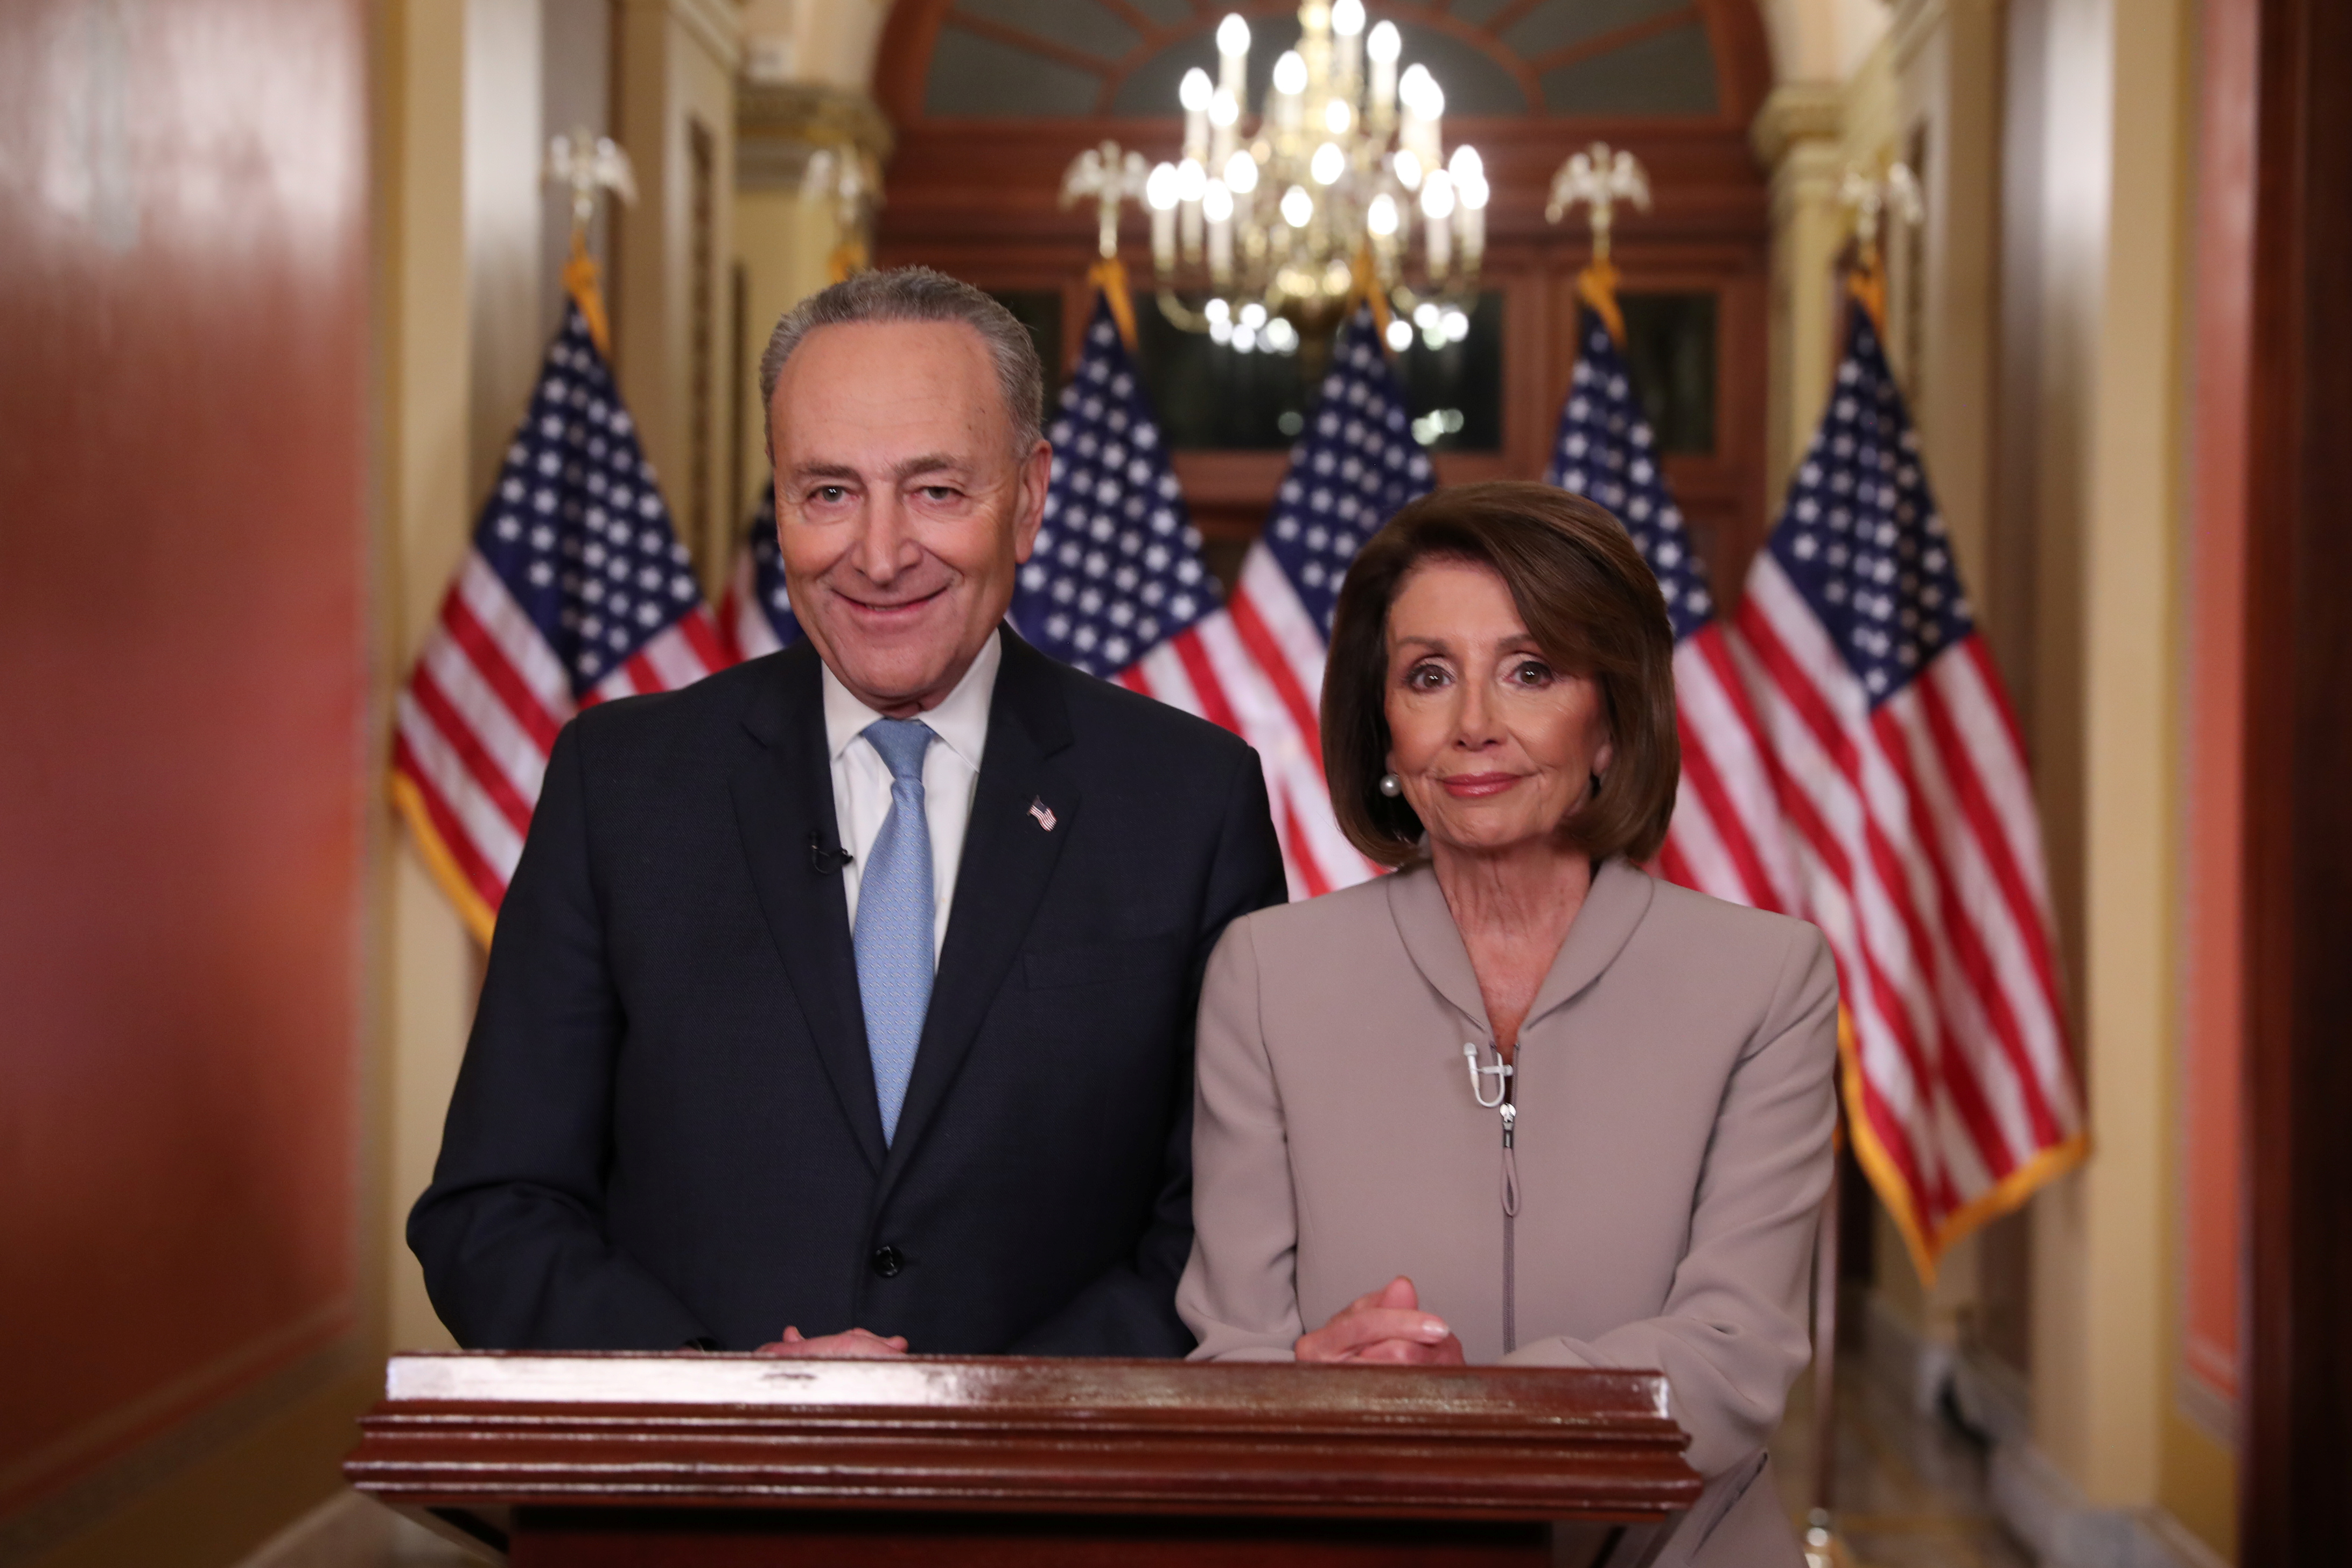 U.S. Speaker of the House Nancy Pelosi and Senate Minority Leader Chuck Schumer pose for photographers after concluding their joint response, to President Trump's prime time address, on Capitol Hill in Washington, U.S., January 8, 2019. REUTERS/Jonathan Ernst